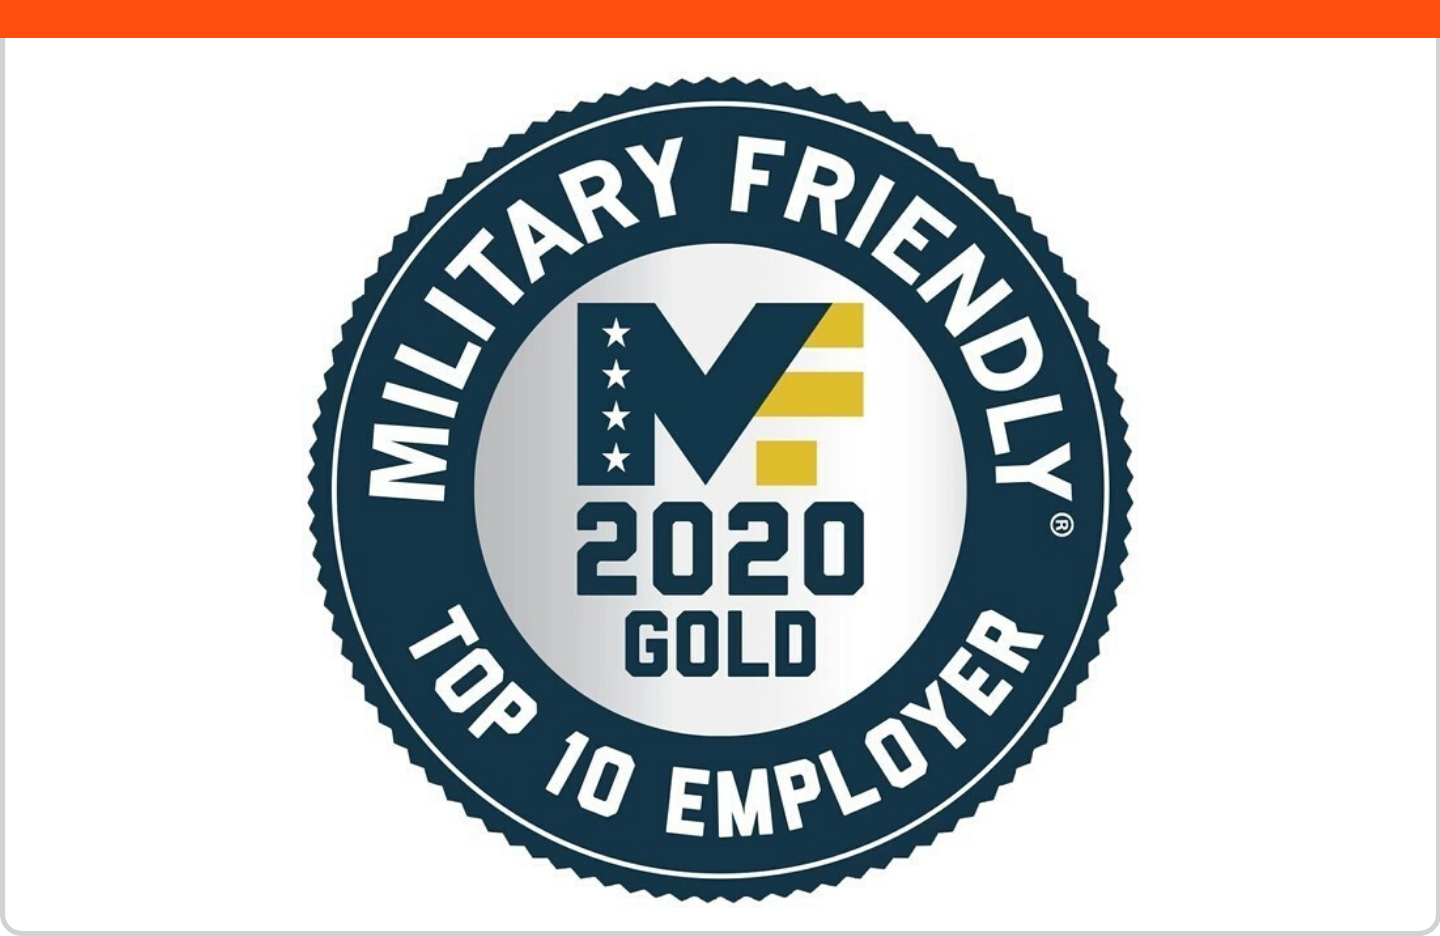 Military Friendly Company 2019 Award